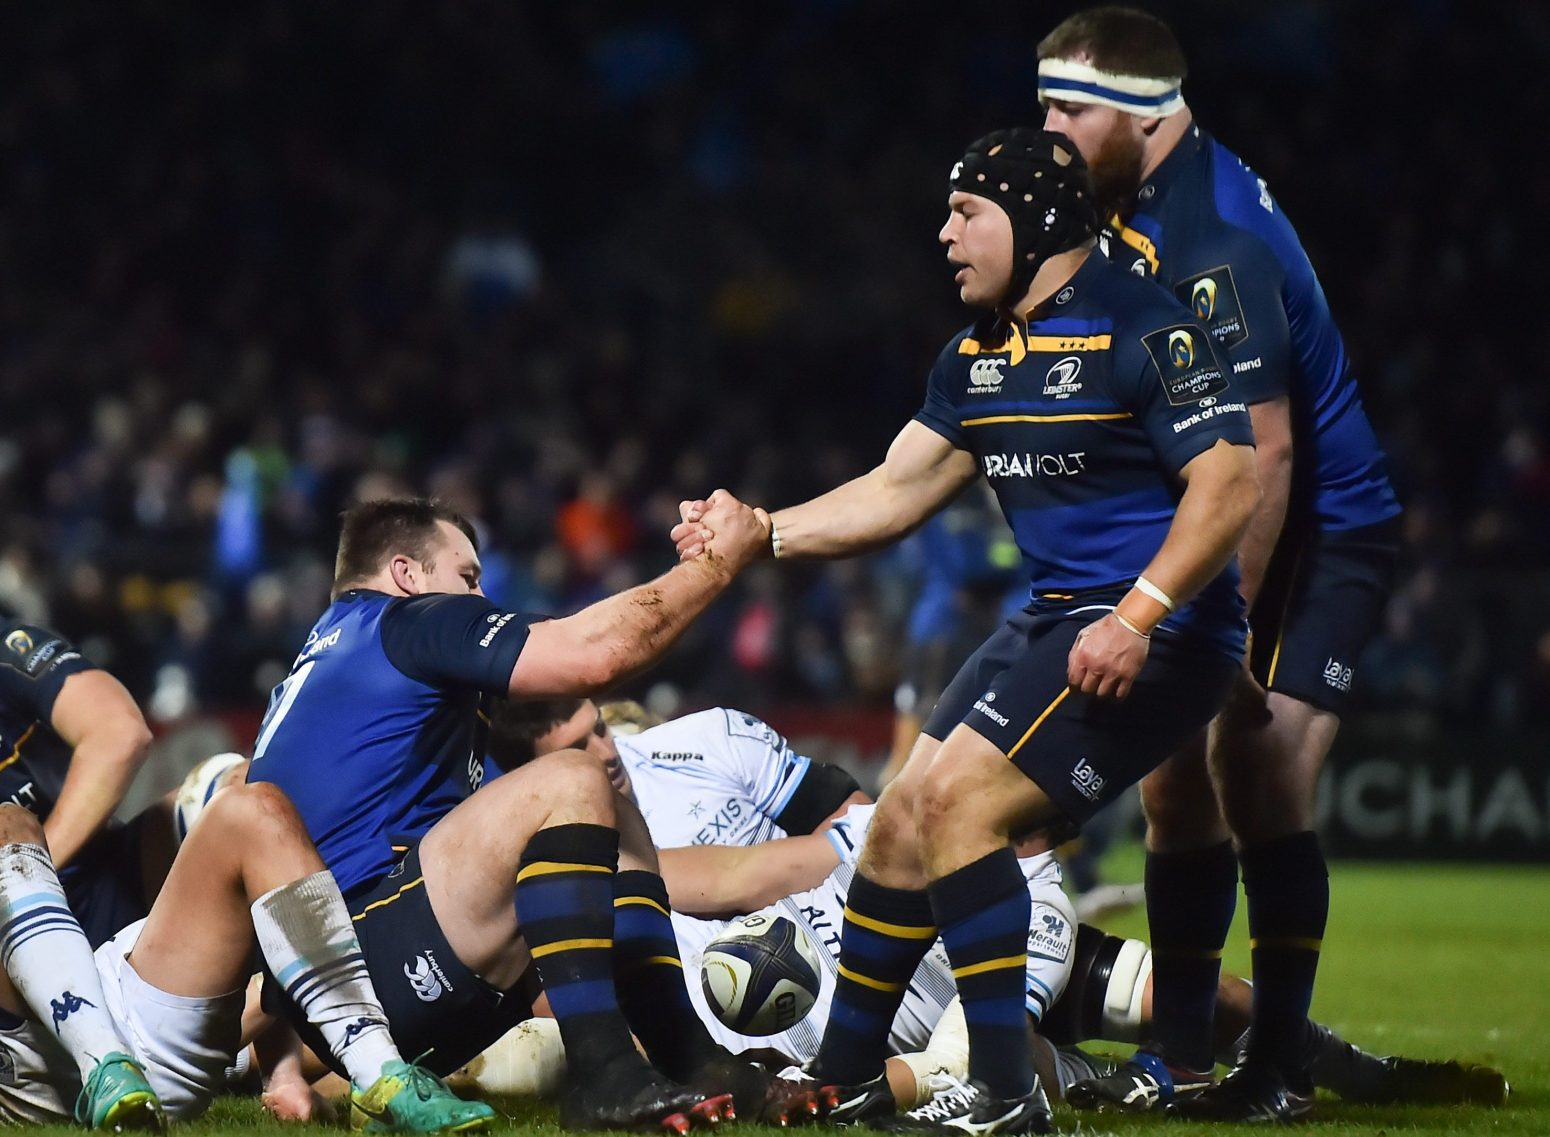 Leinster v Montpellier - European Rugby Champions Cup Pool 4 Round 5